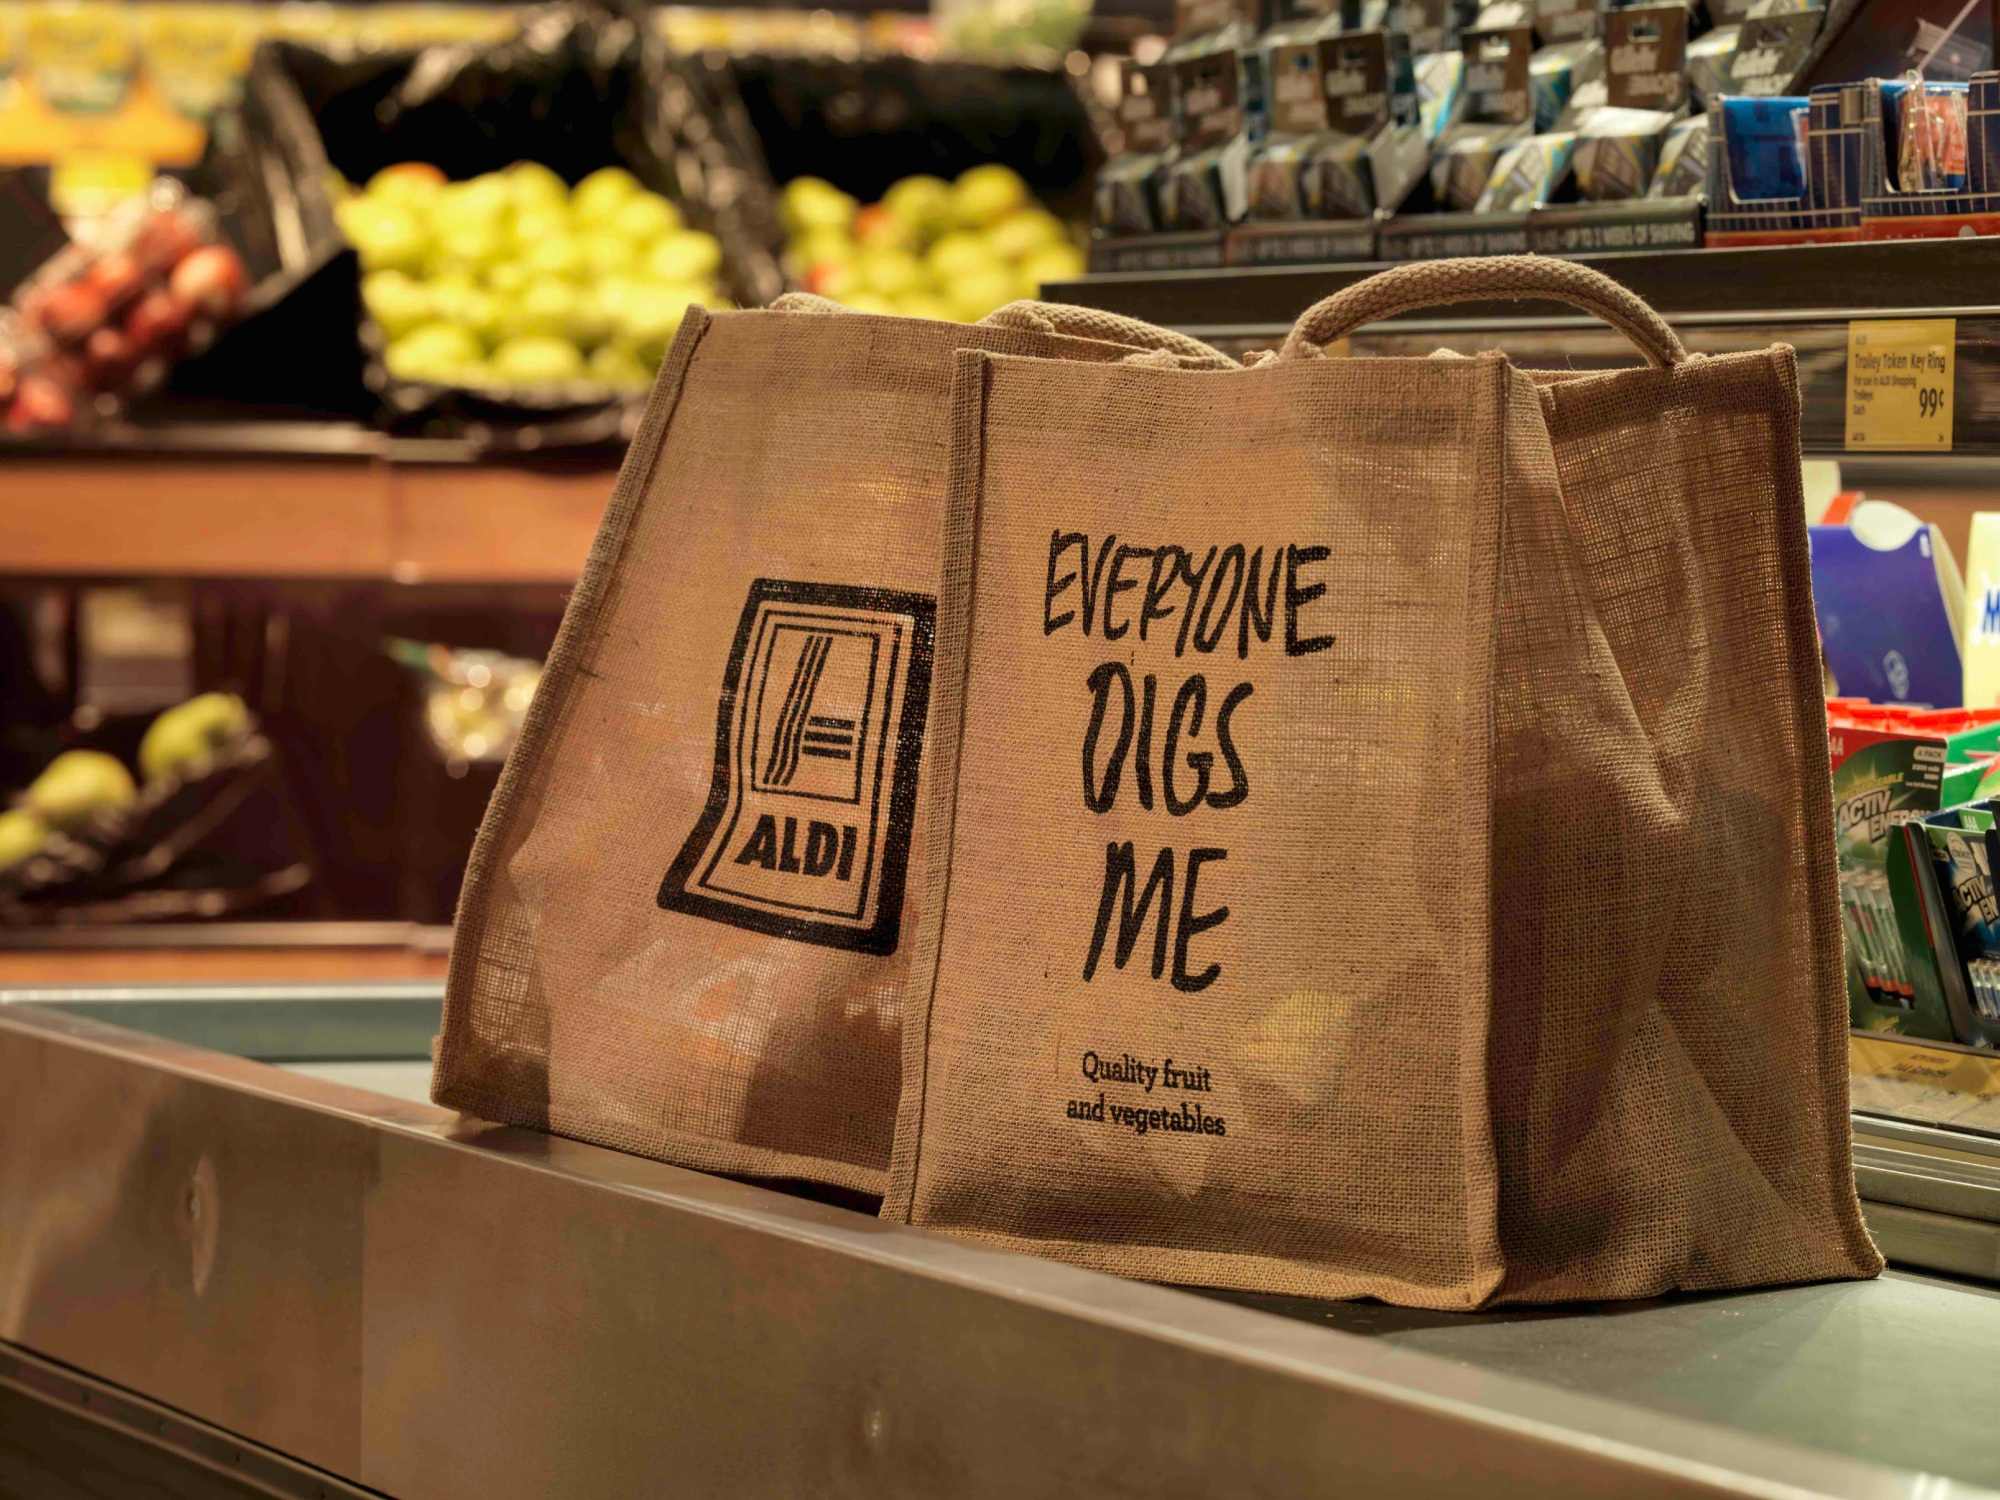 Aldi is coming, and consumers look set to reap the benefits.